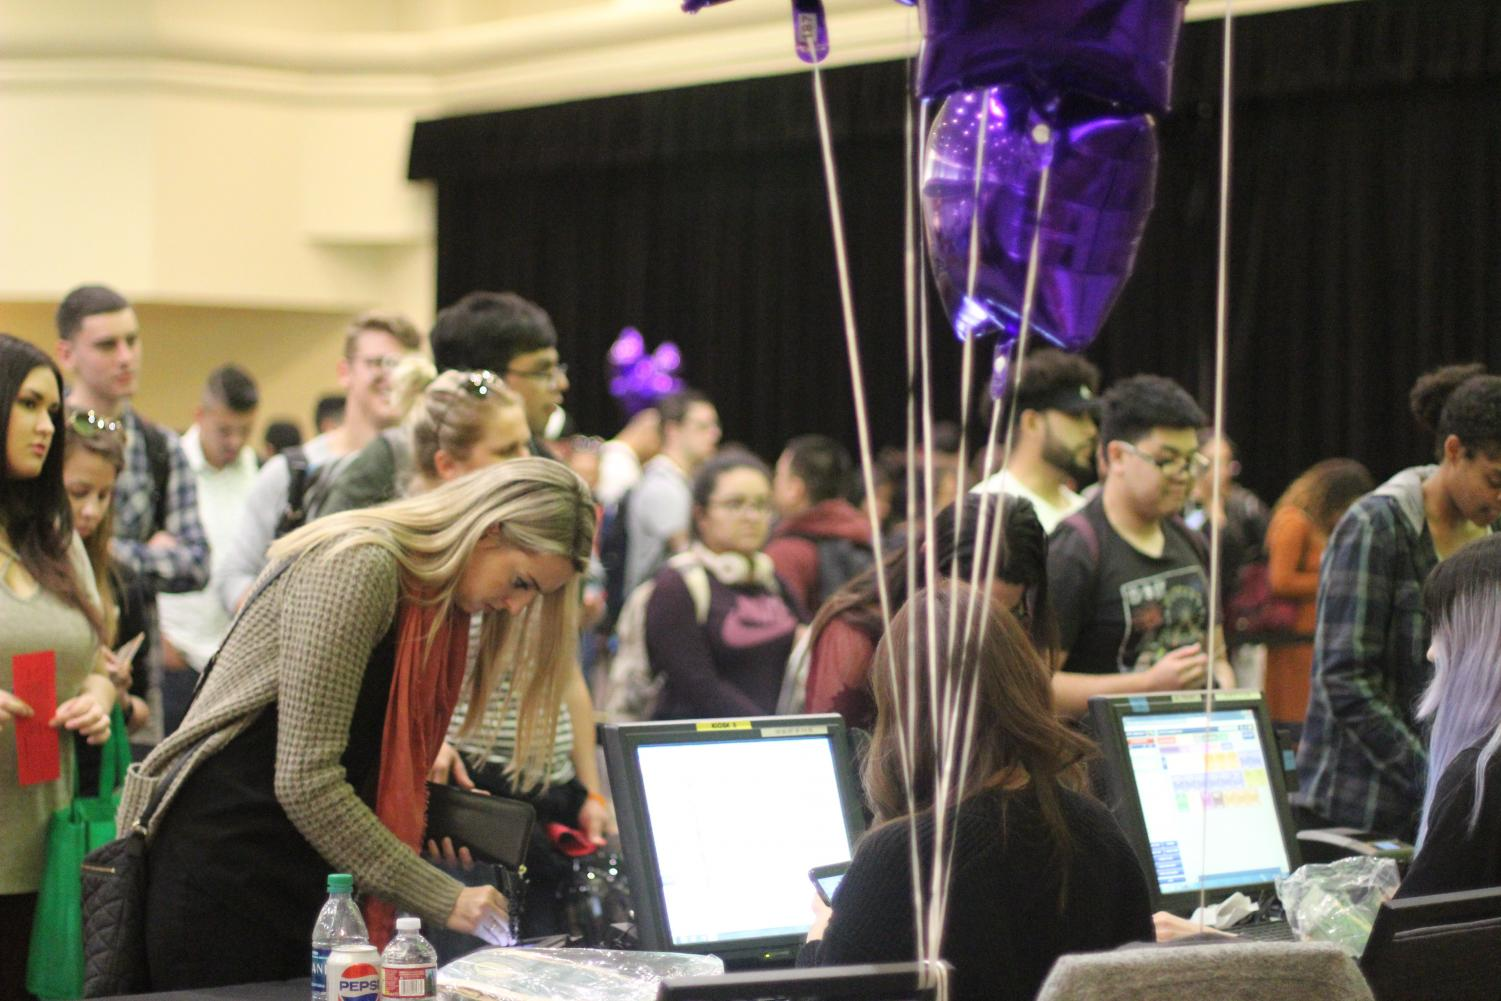 Graduating seniors stand in line to pay for their cap and gown at Grad Fest in the University Union Ballroom on March 28, 2018.